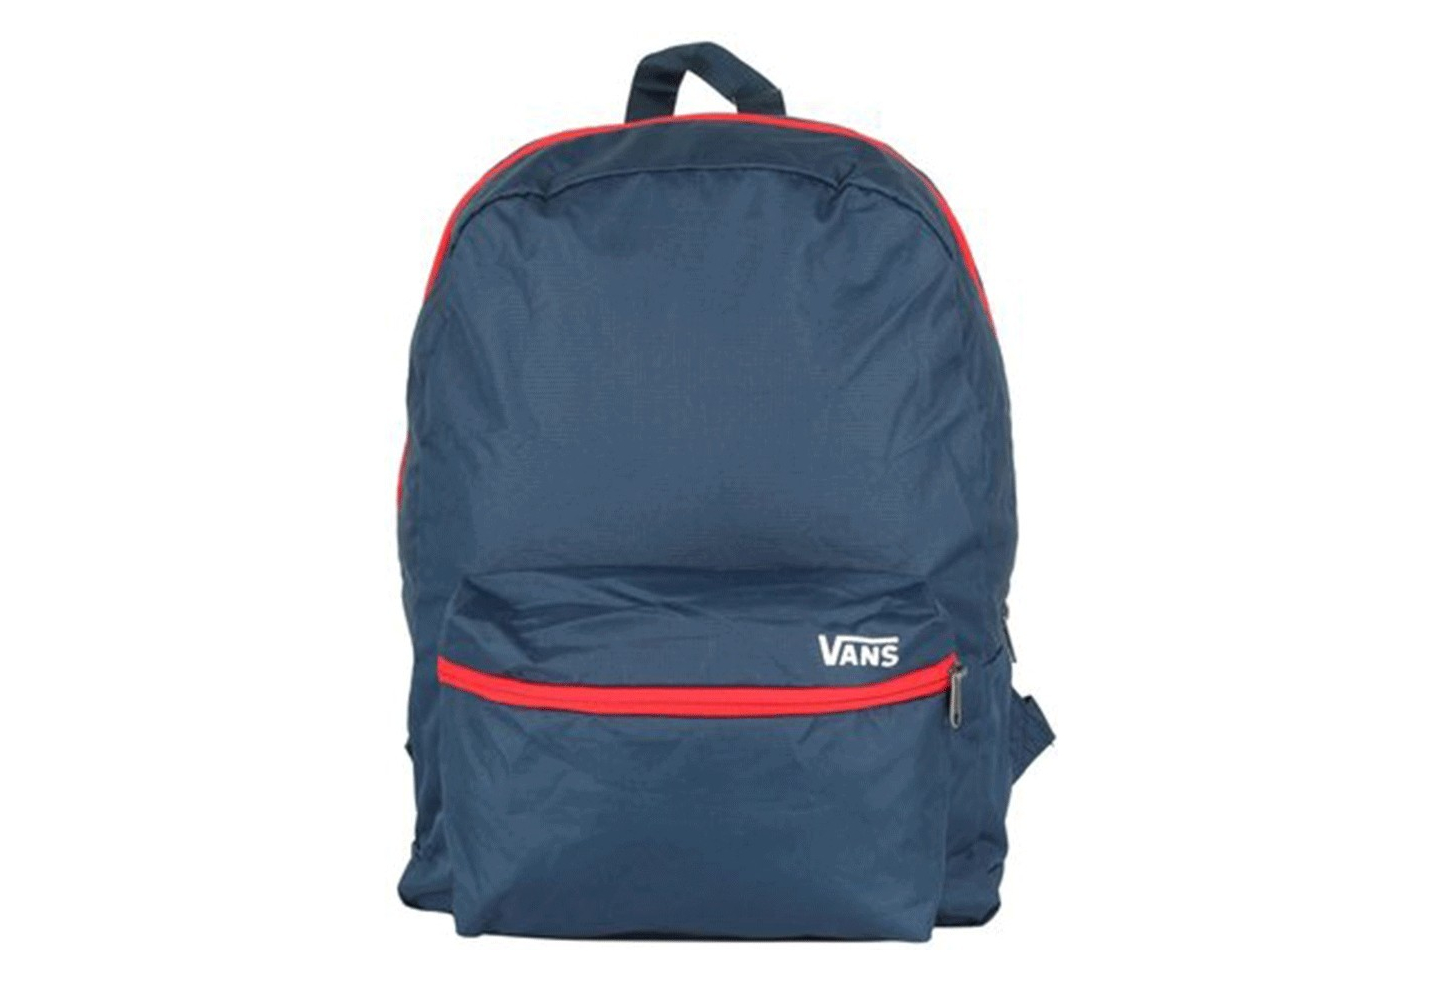 grossiste 6c667 7bfdb Packable Old School Homme Femme Sac a Dos Bleu Vans